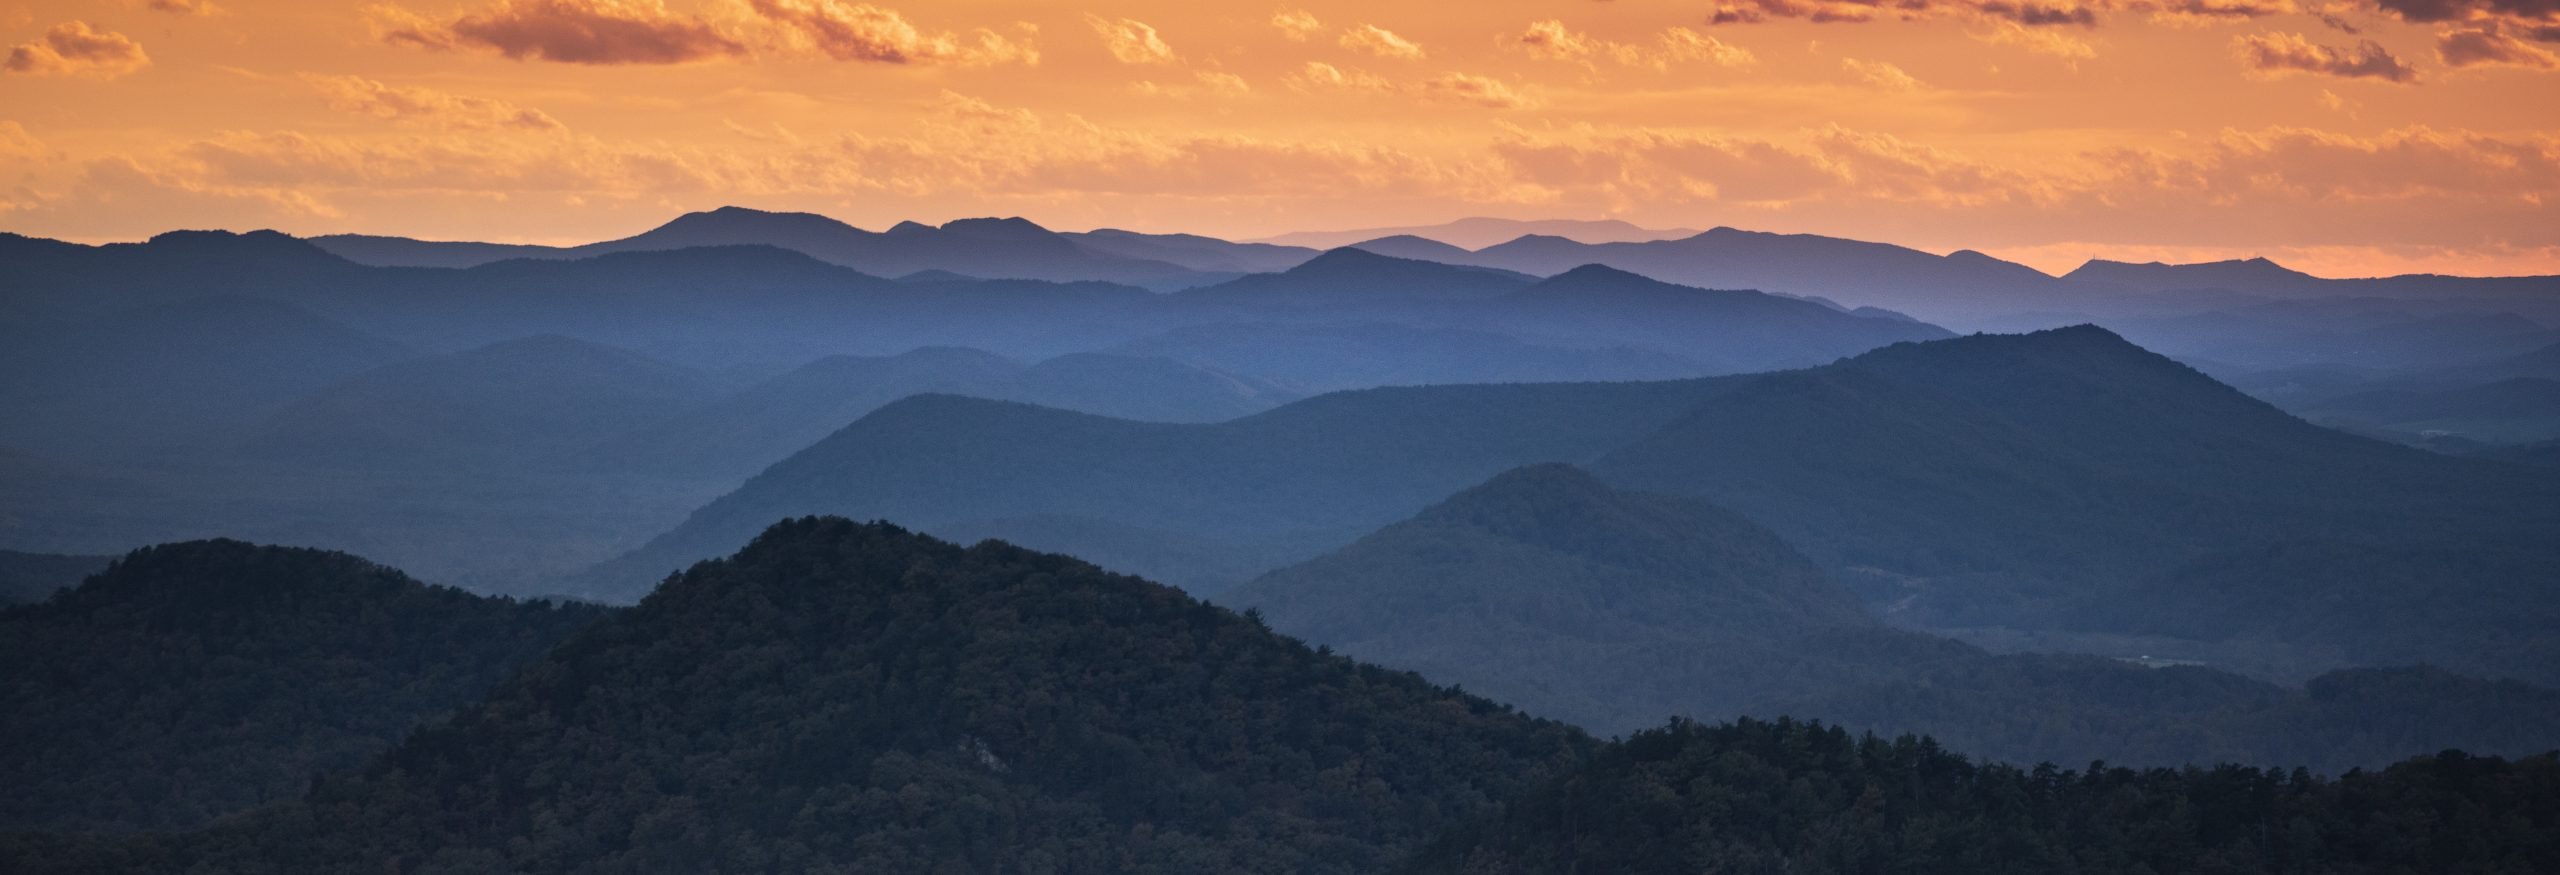 Blue Ridge Mountains scenic panorama vista view